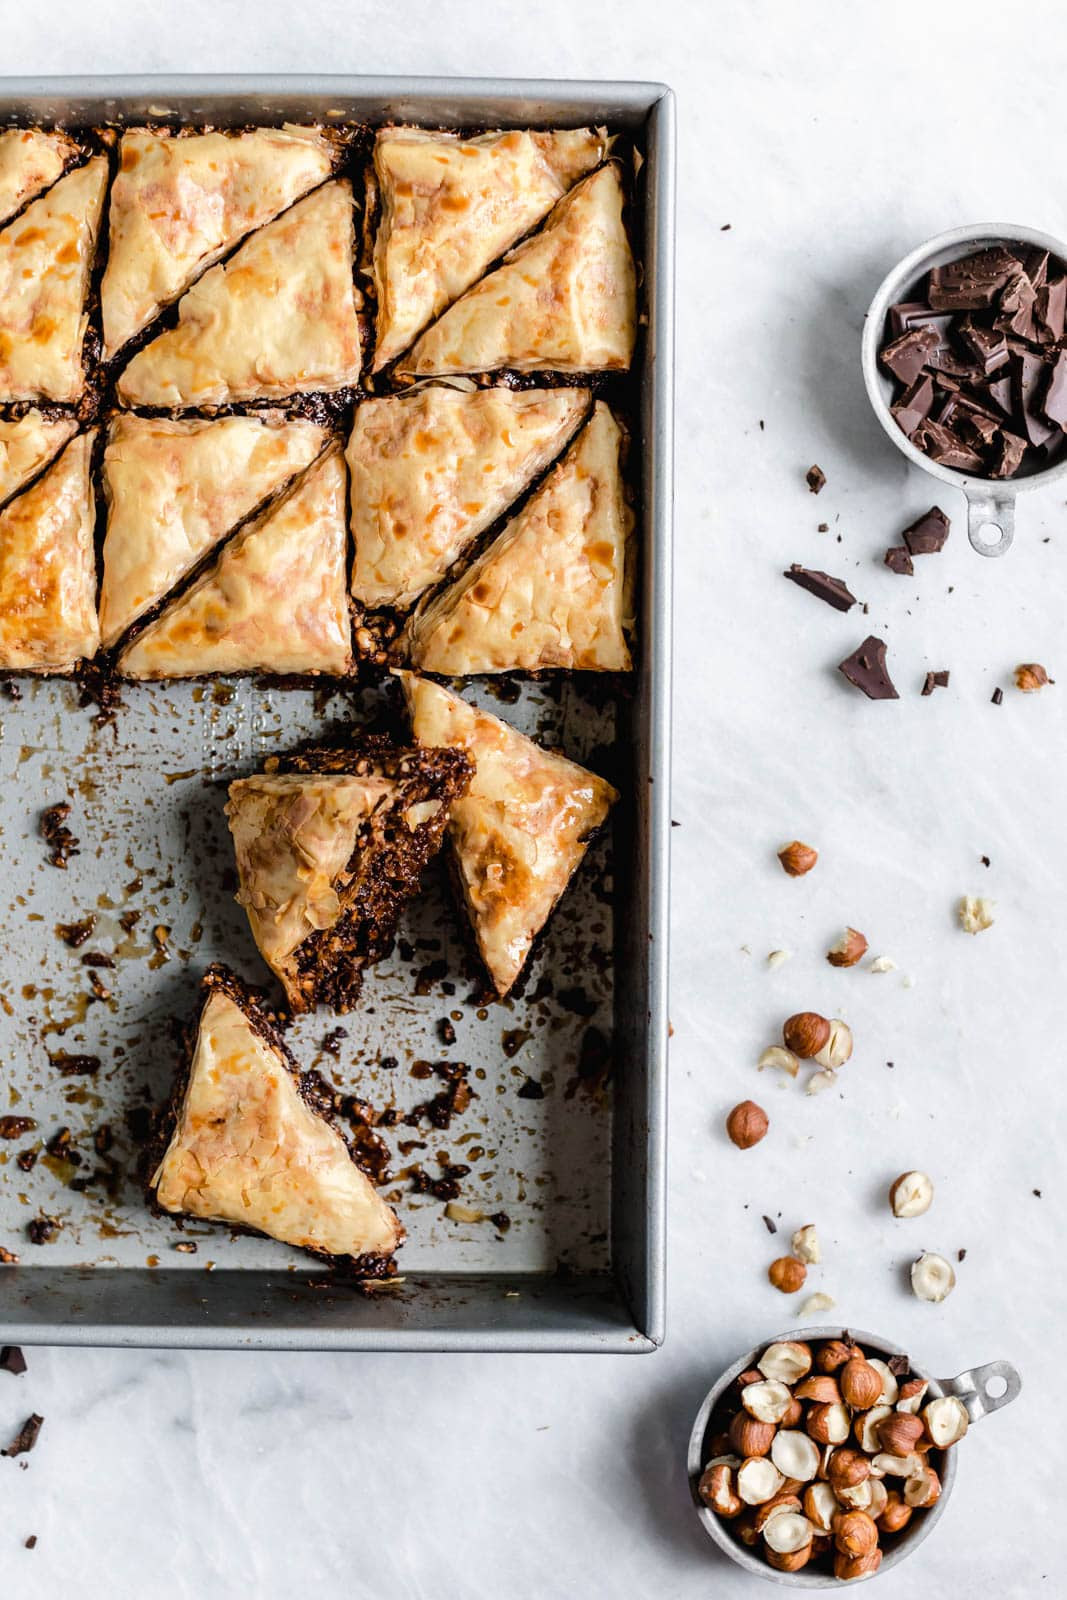 An out-of-this-world Chocolate Hazelnut Baklava soaked in a cocoa nib and honey syrup. From the Sofra bakery cookbook, Soframiz!